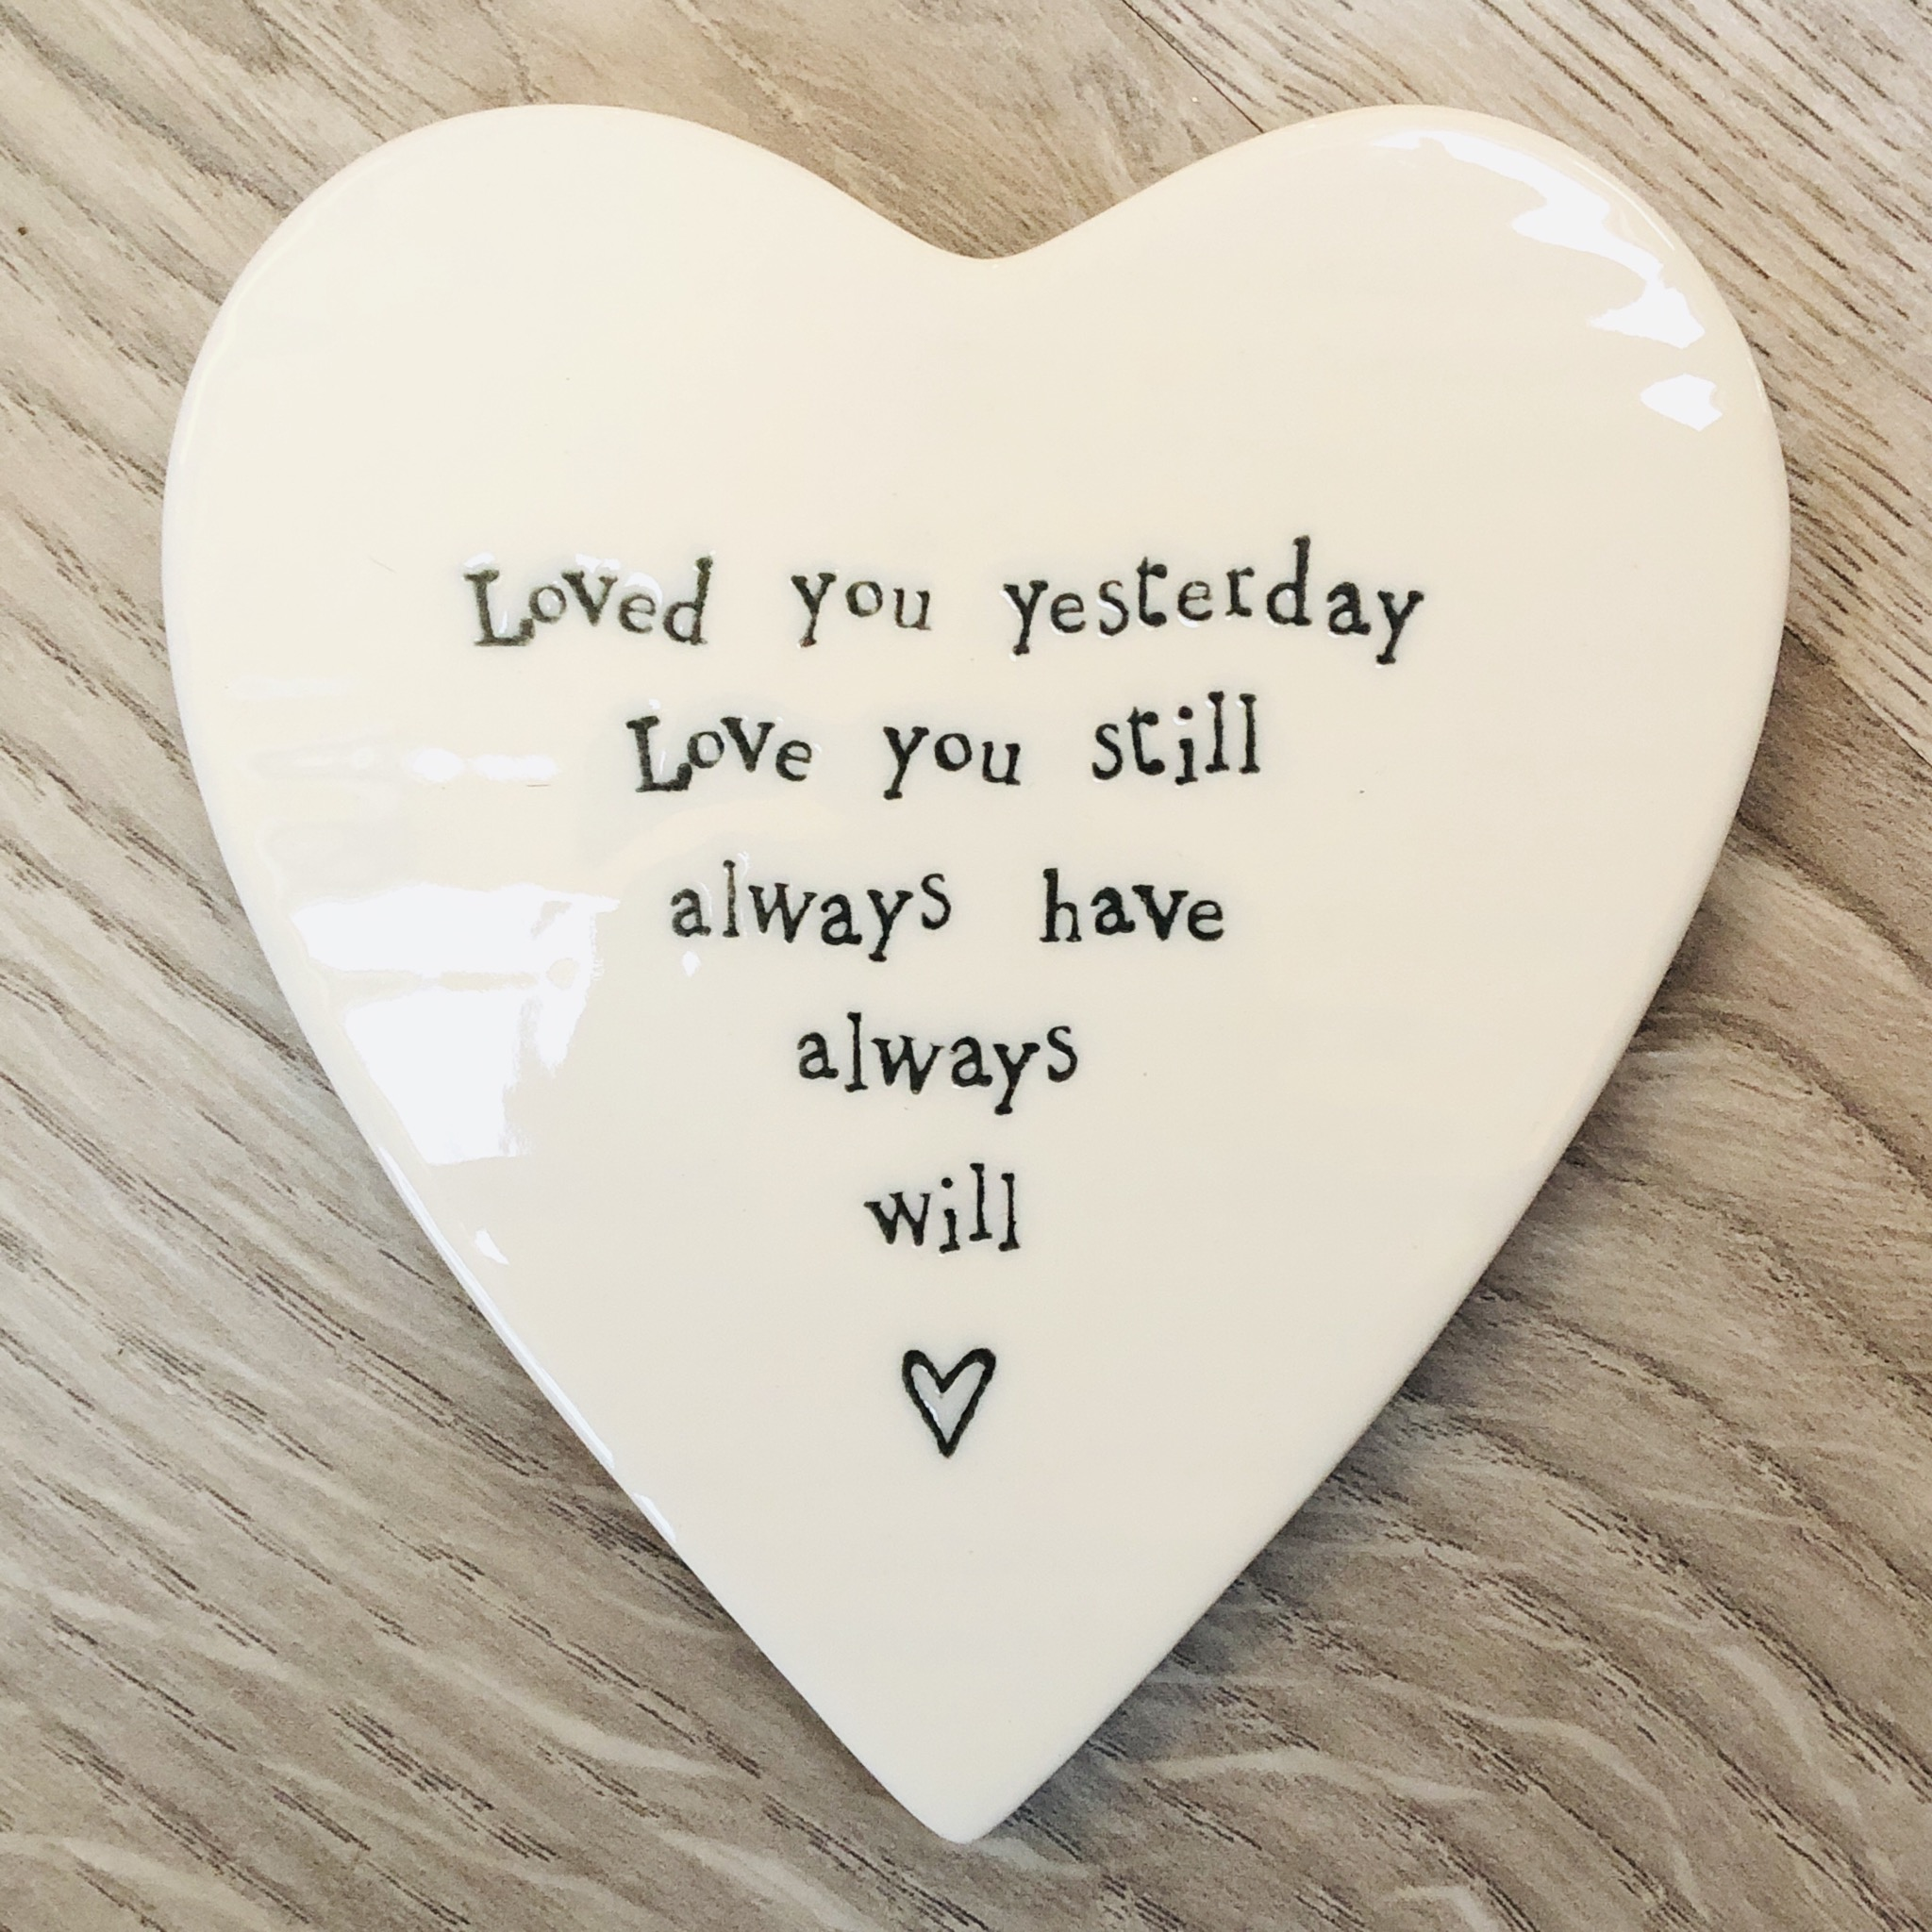 East of India porcelain heart shaped coaster. Loved you yesterday love you still always have always will.